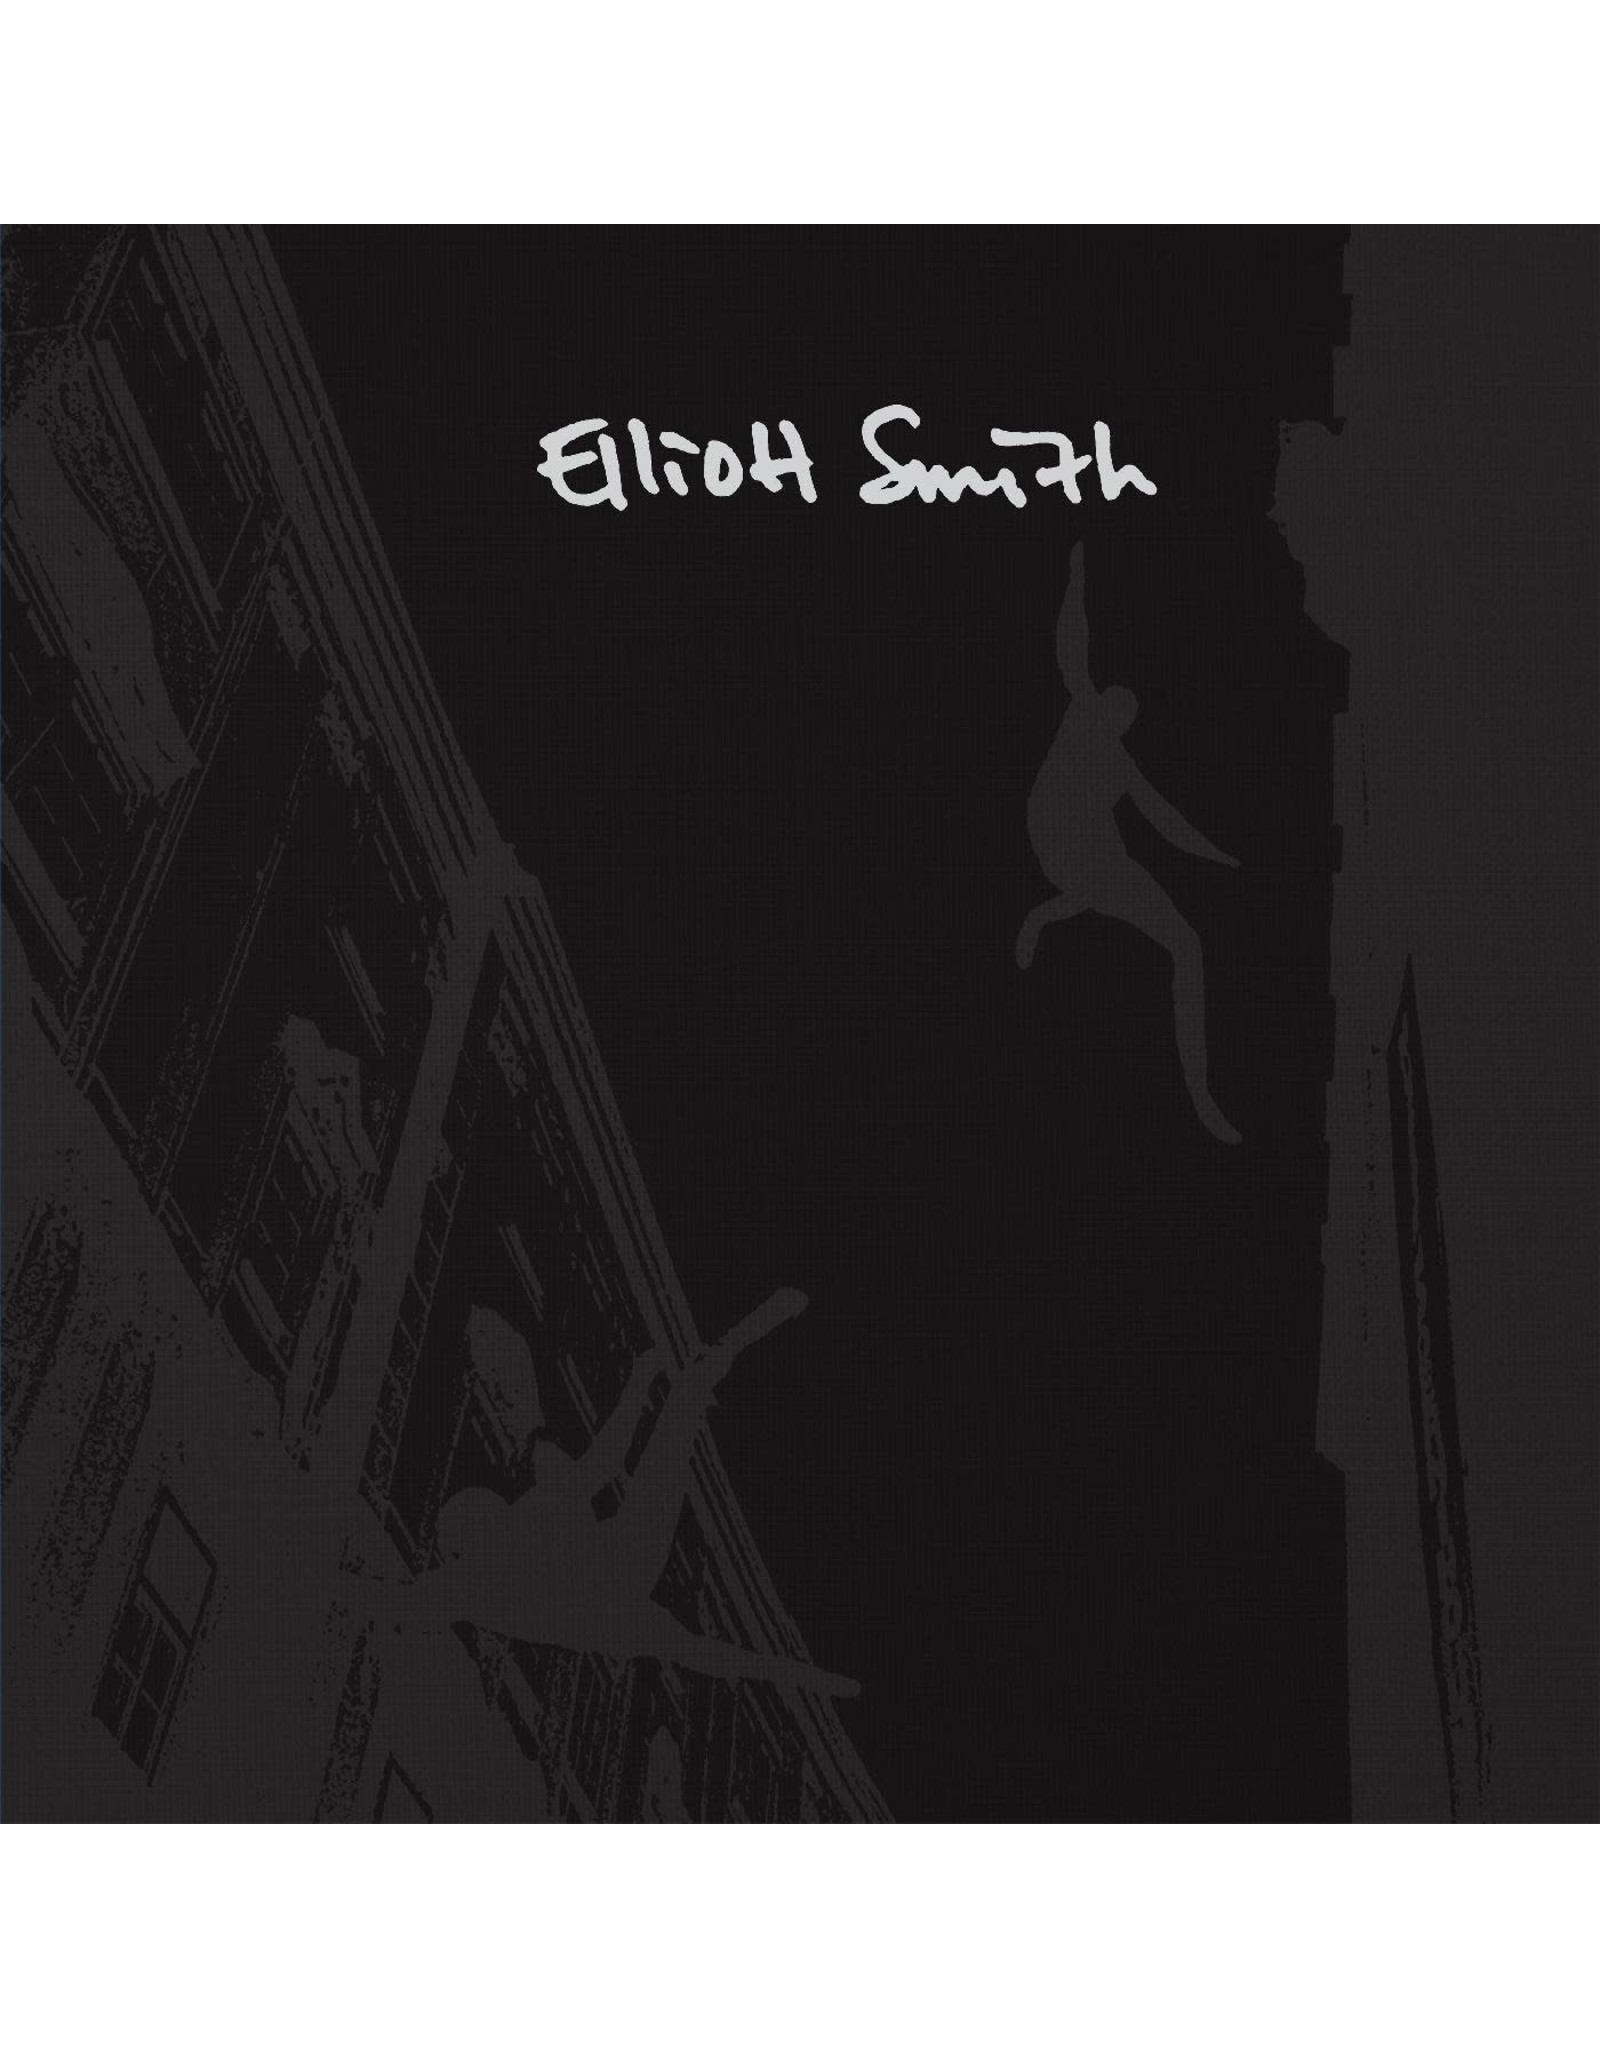 Elliott Smith - Elliot Smith (25th Anniversary)